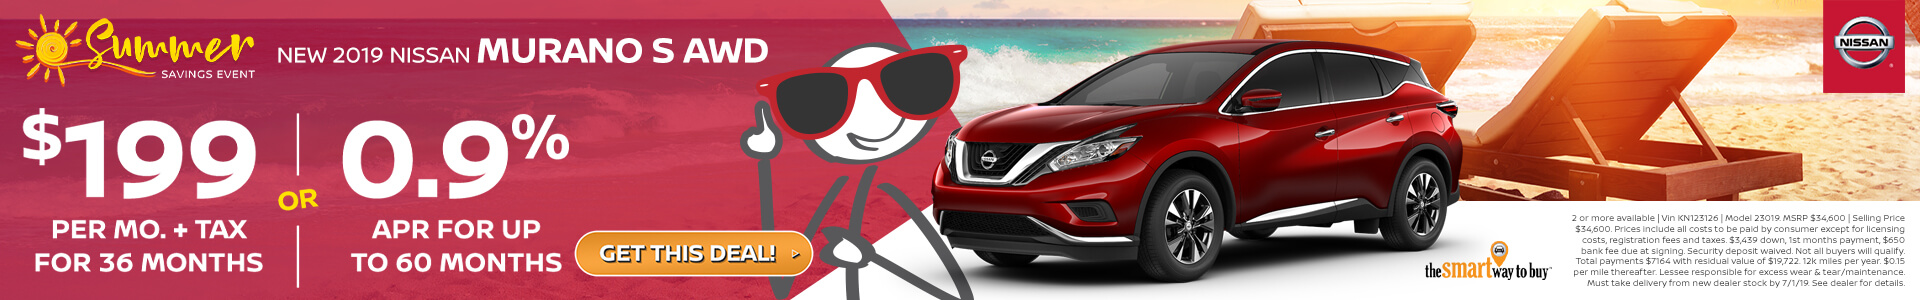 2019 Nissan Murano Lease for $199